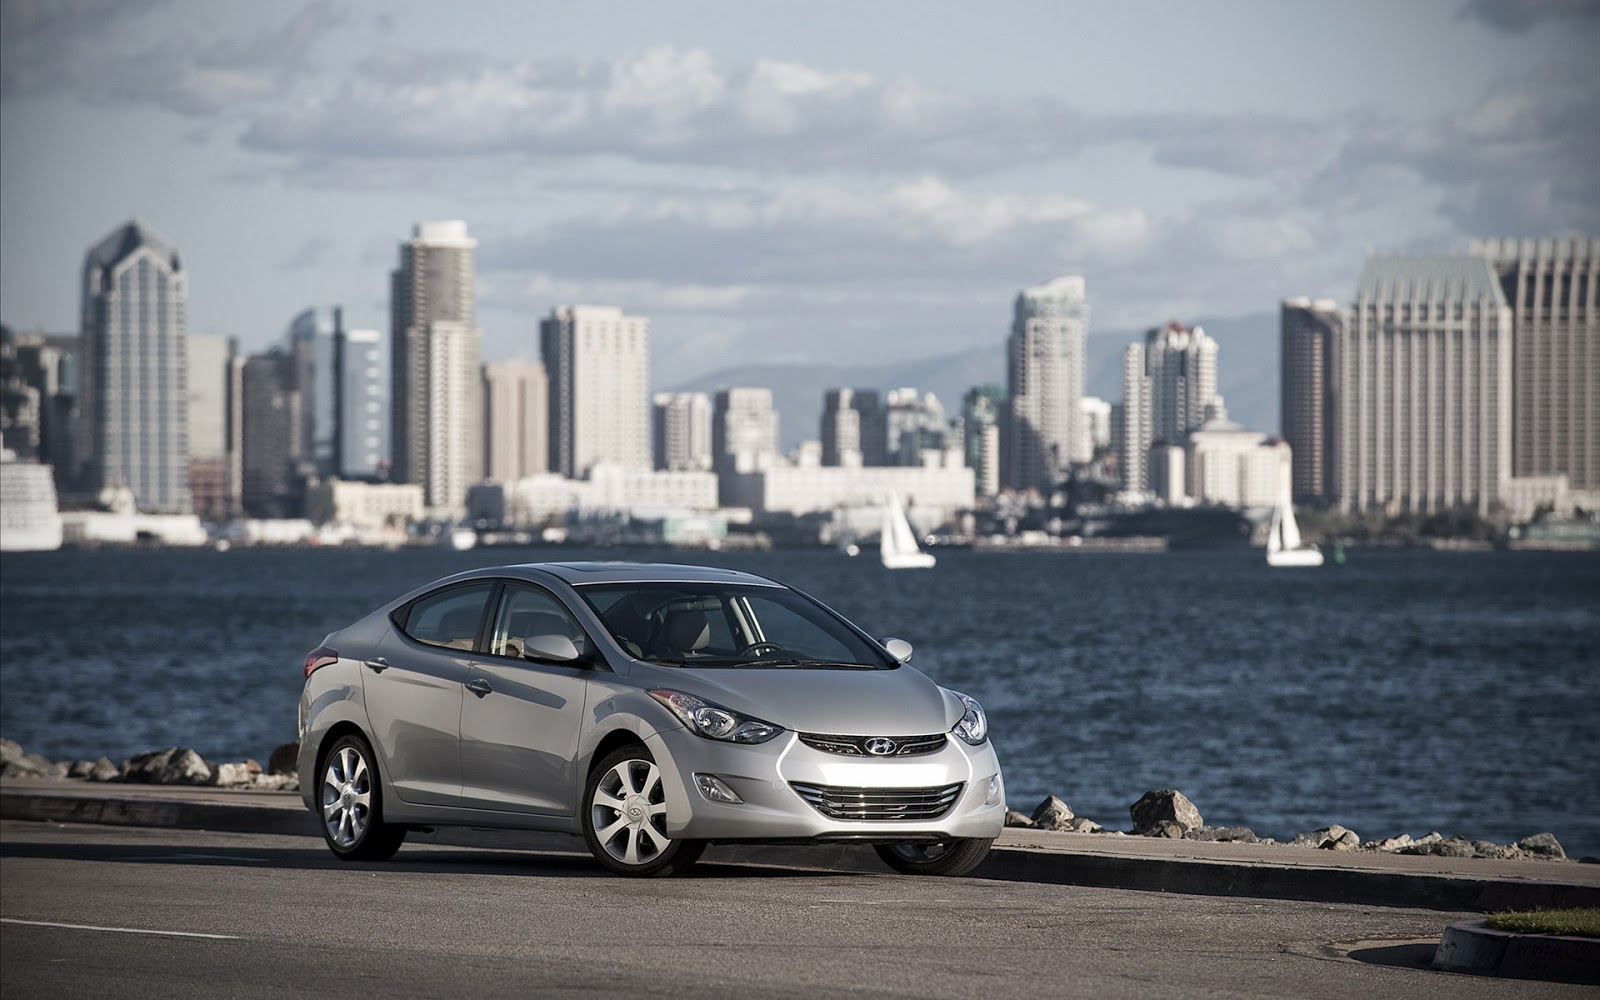 http://www.crazywallpapers.in/2014/03/hyundai-elantra-hd-pictures.html